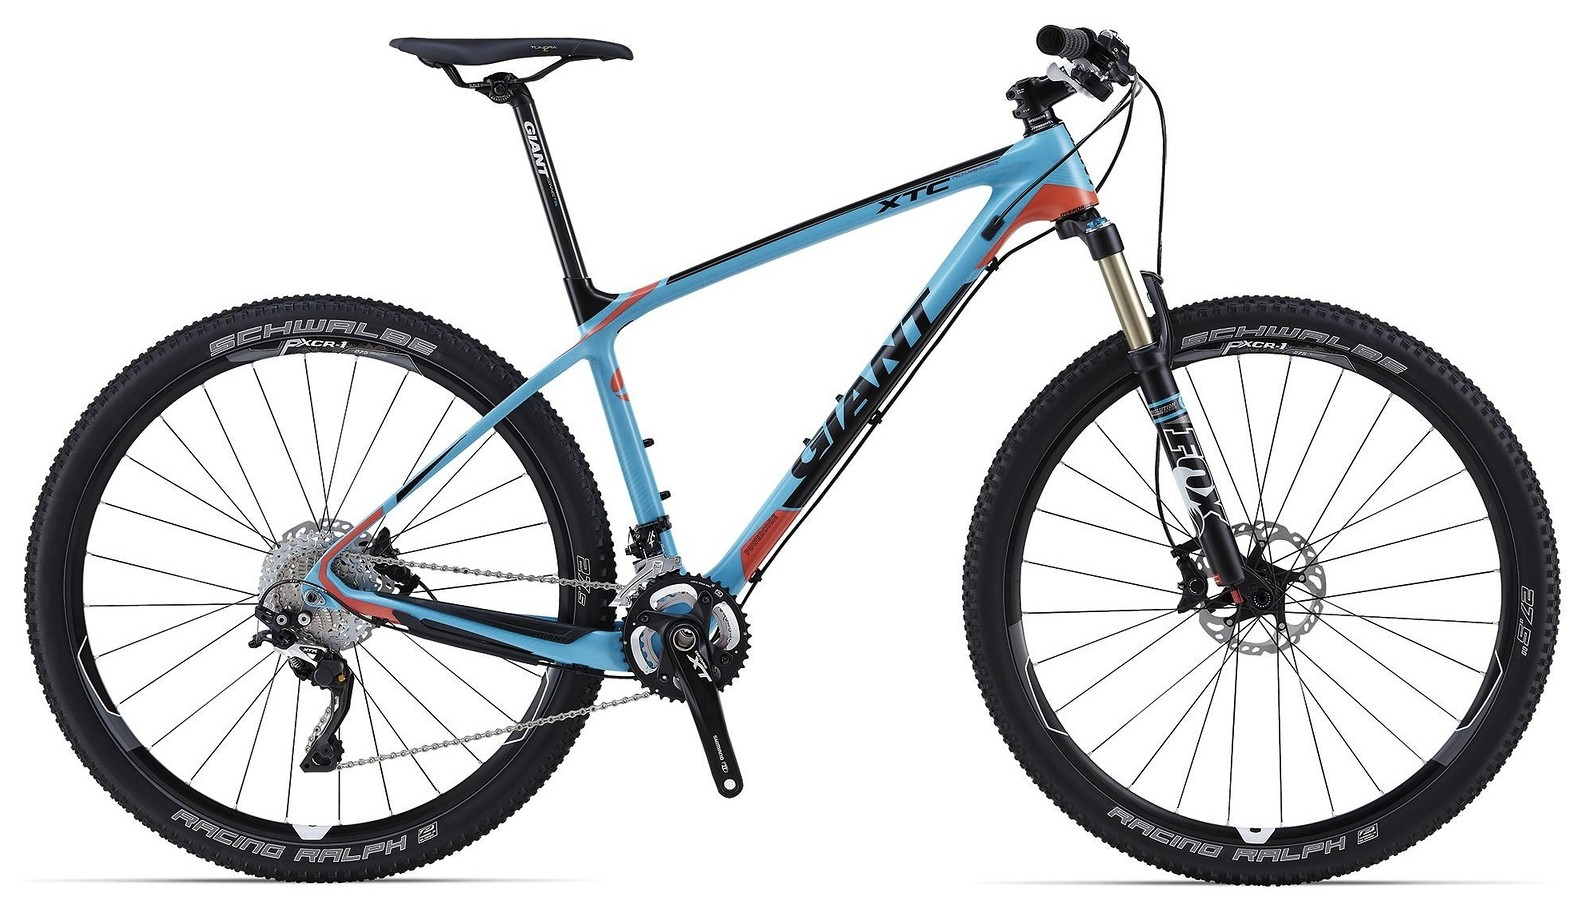 2014 Giant XTC Advanced 27.5 2 Bike XtC_Advanced_27.5_2_blue